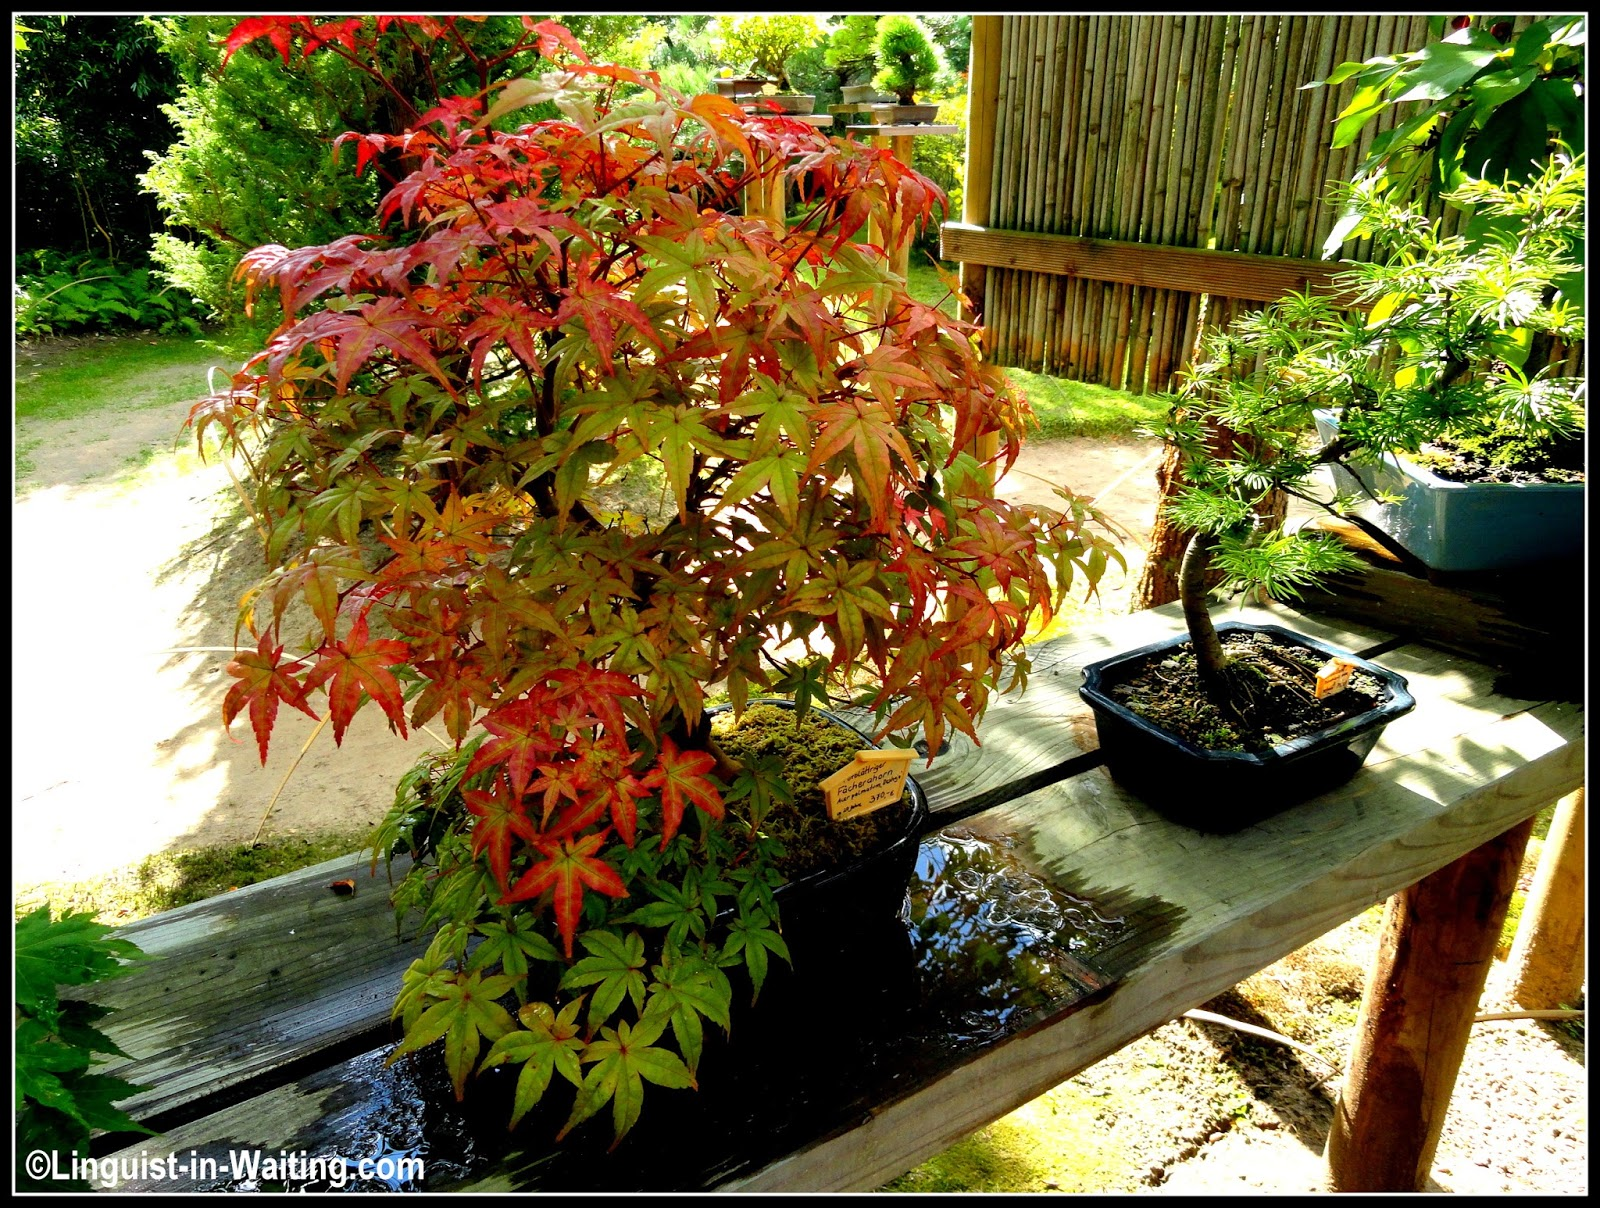 Memoirs of a Traveling Ex-Linguist: Year 14: The Japanese Bonsai ...